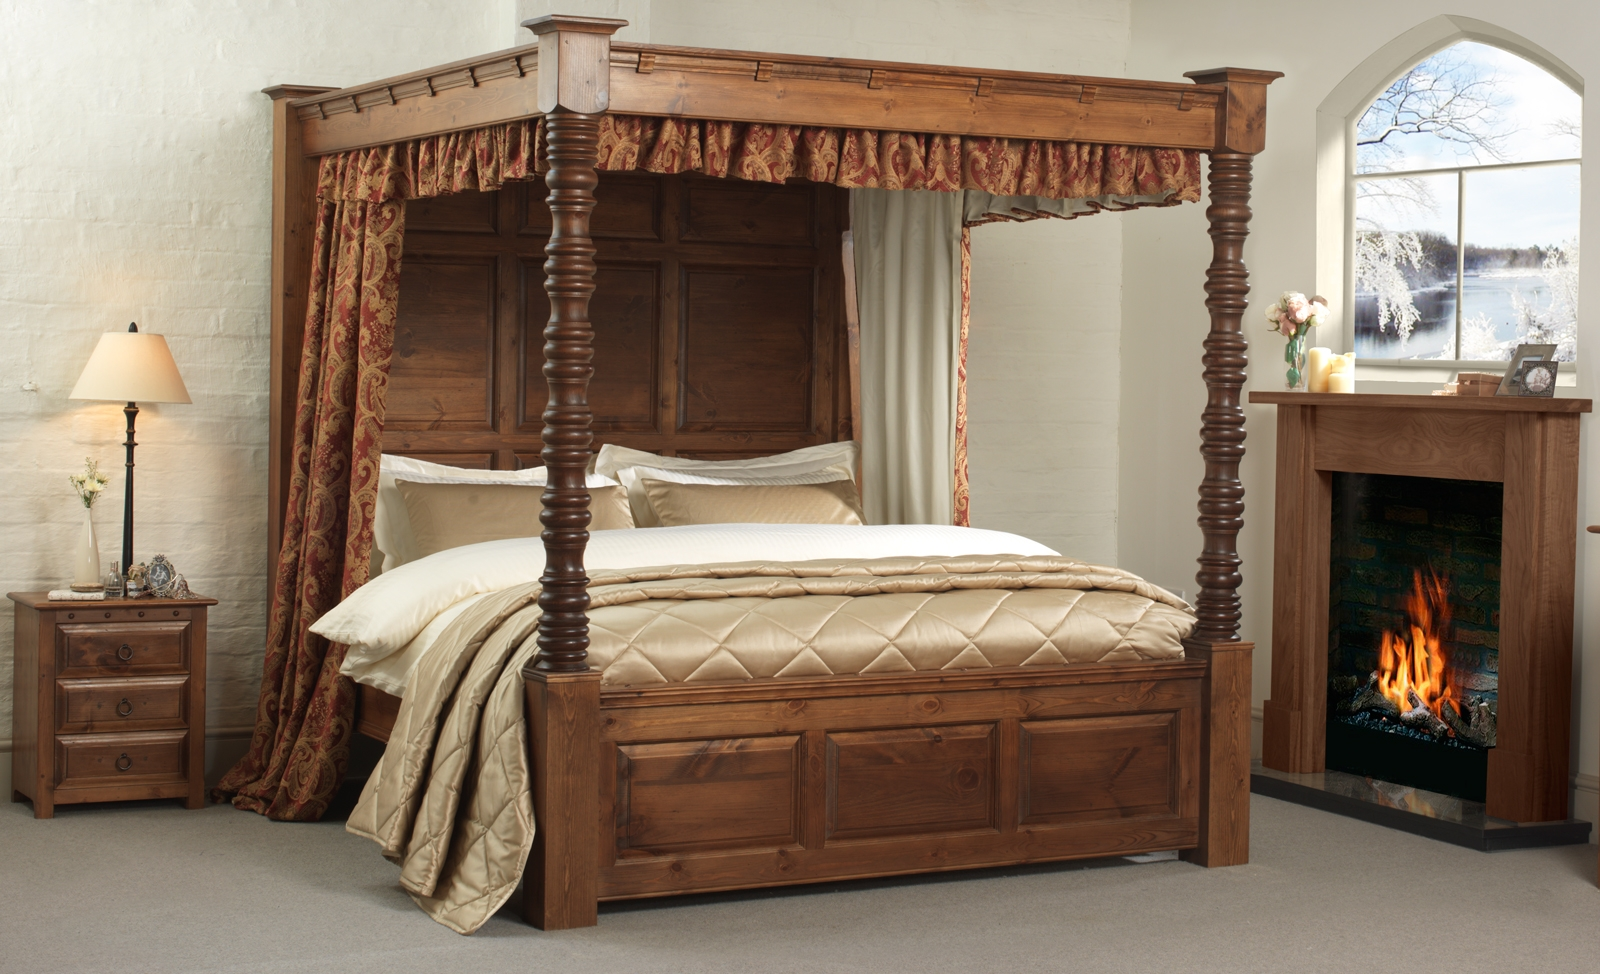 4 Poster Bed Canopy Frame